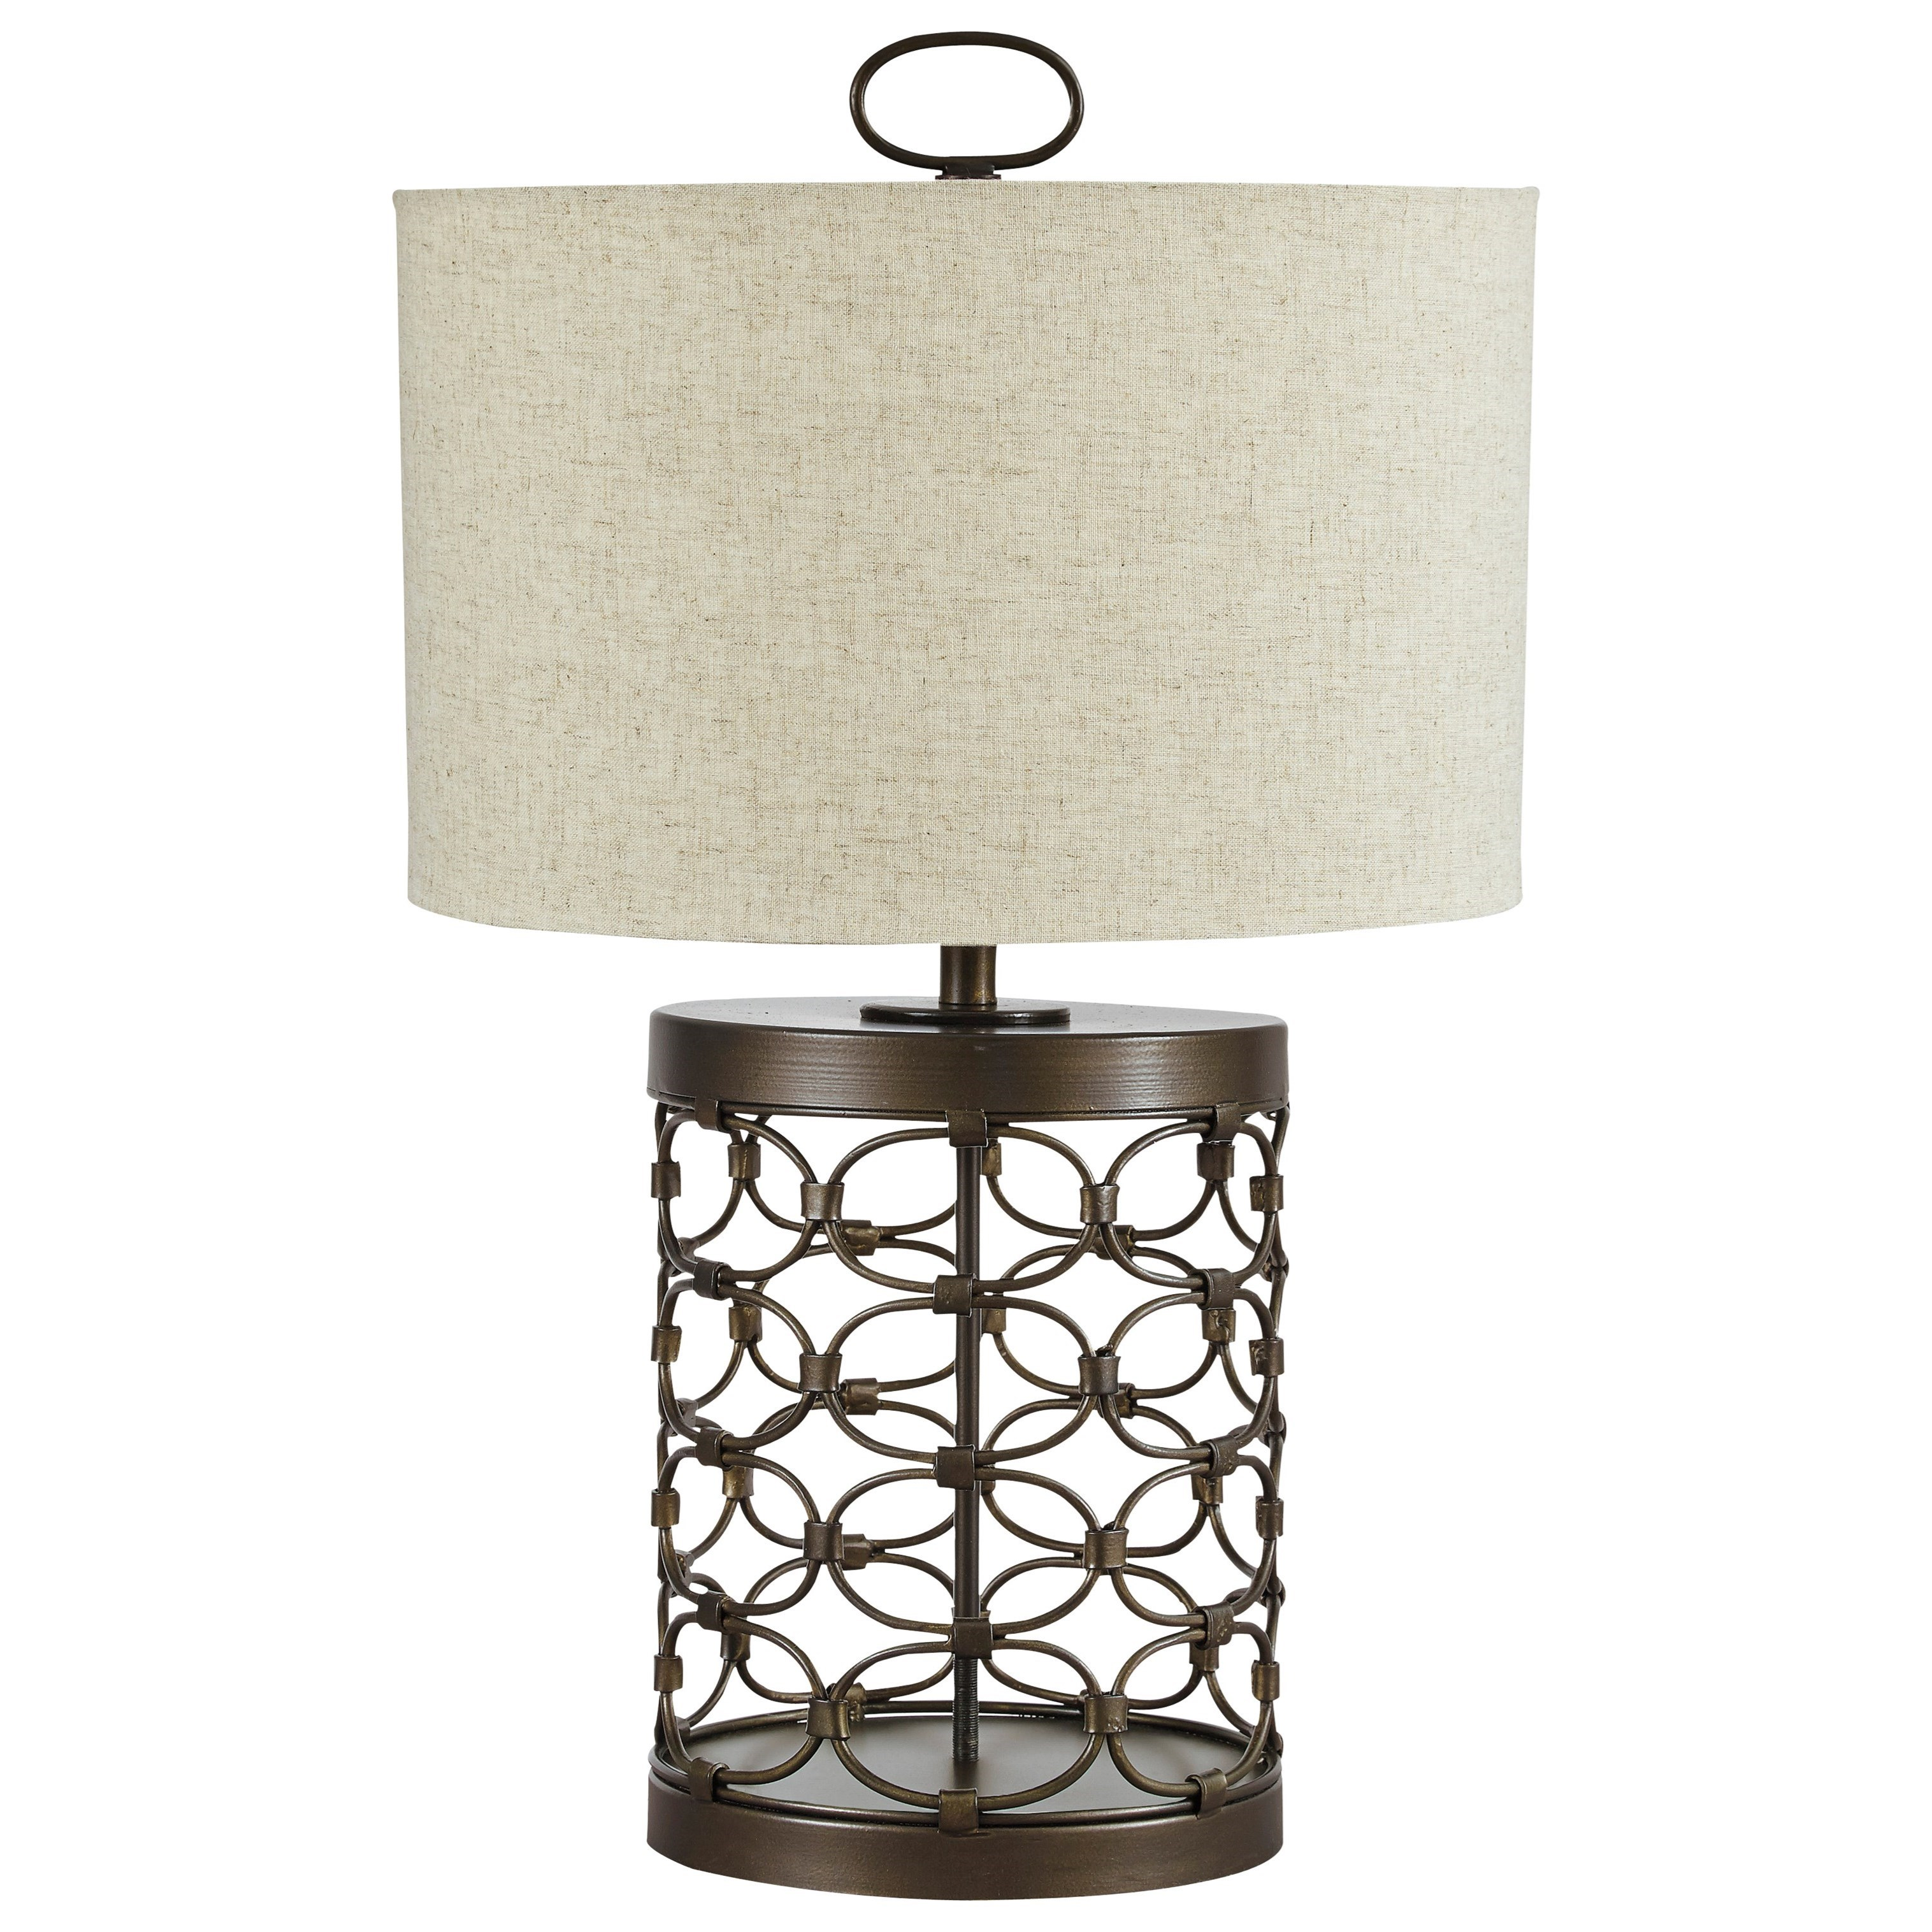 Captivating Signature Design By Ashley Lamps   Contemporary Aryan Black Finish Metal  Table Lamp   Item Number